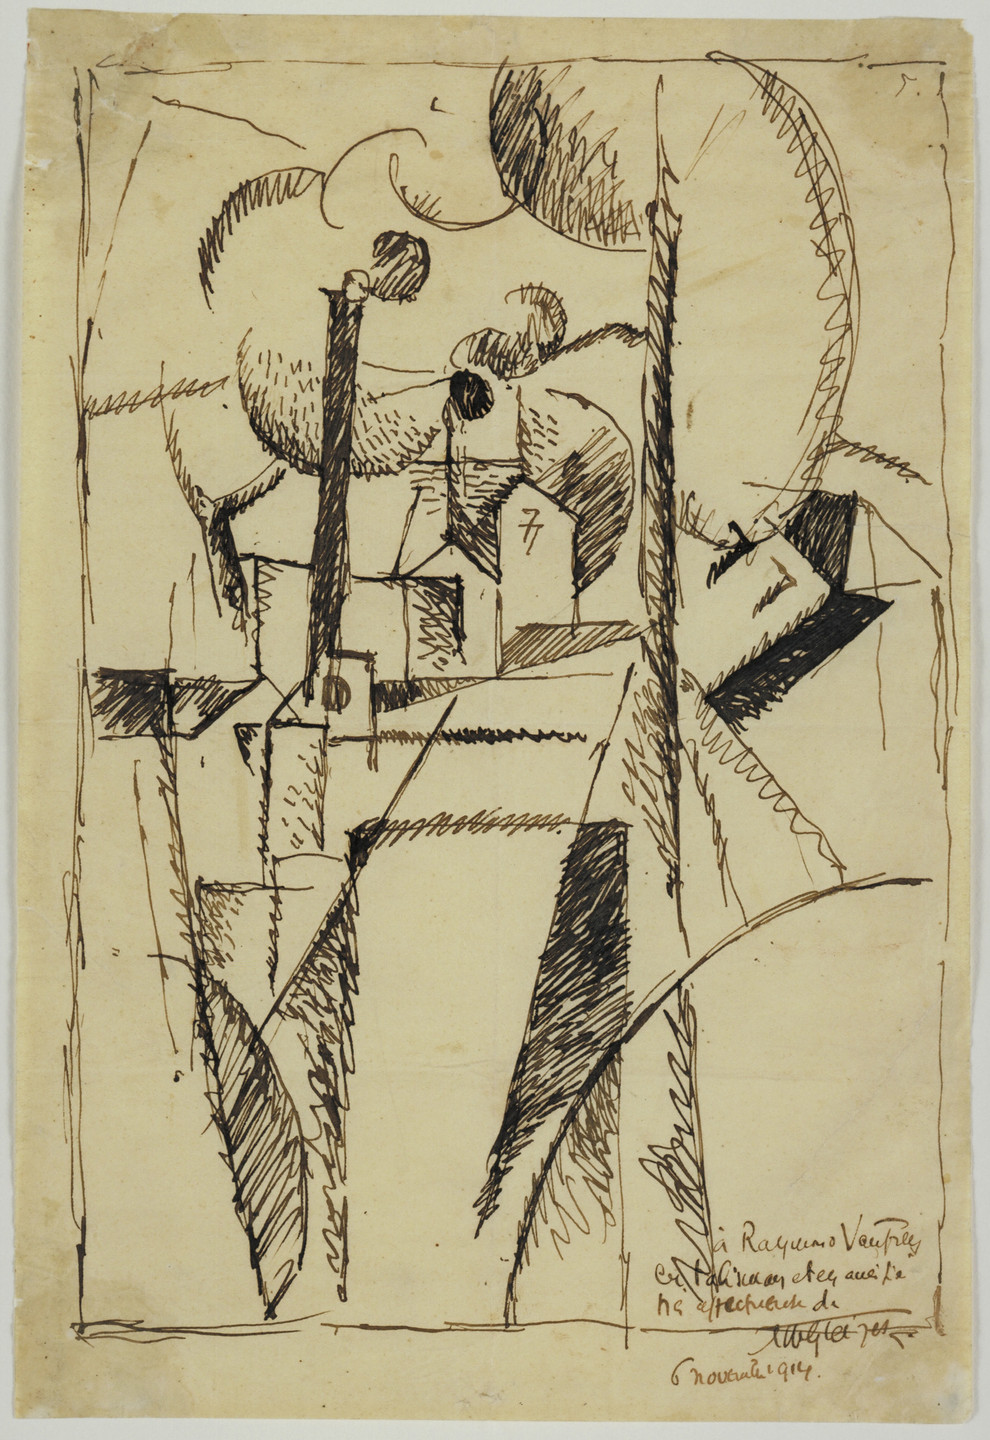 Albert Gleizes. Landscape with Chimneys. (1913)